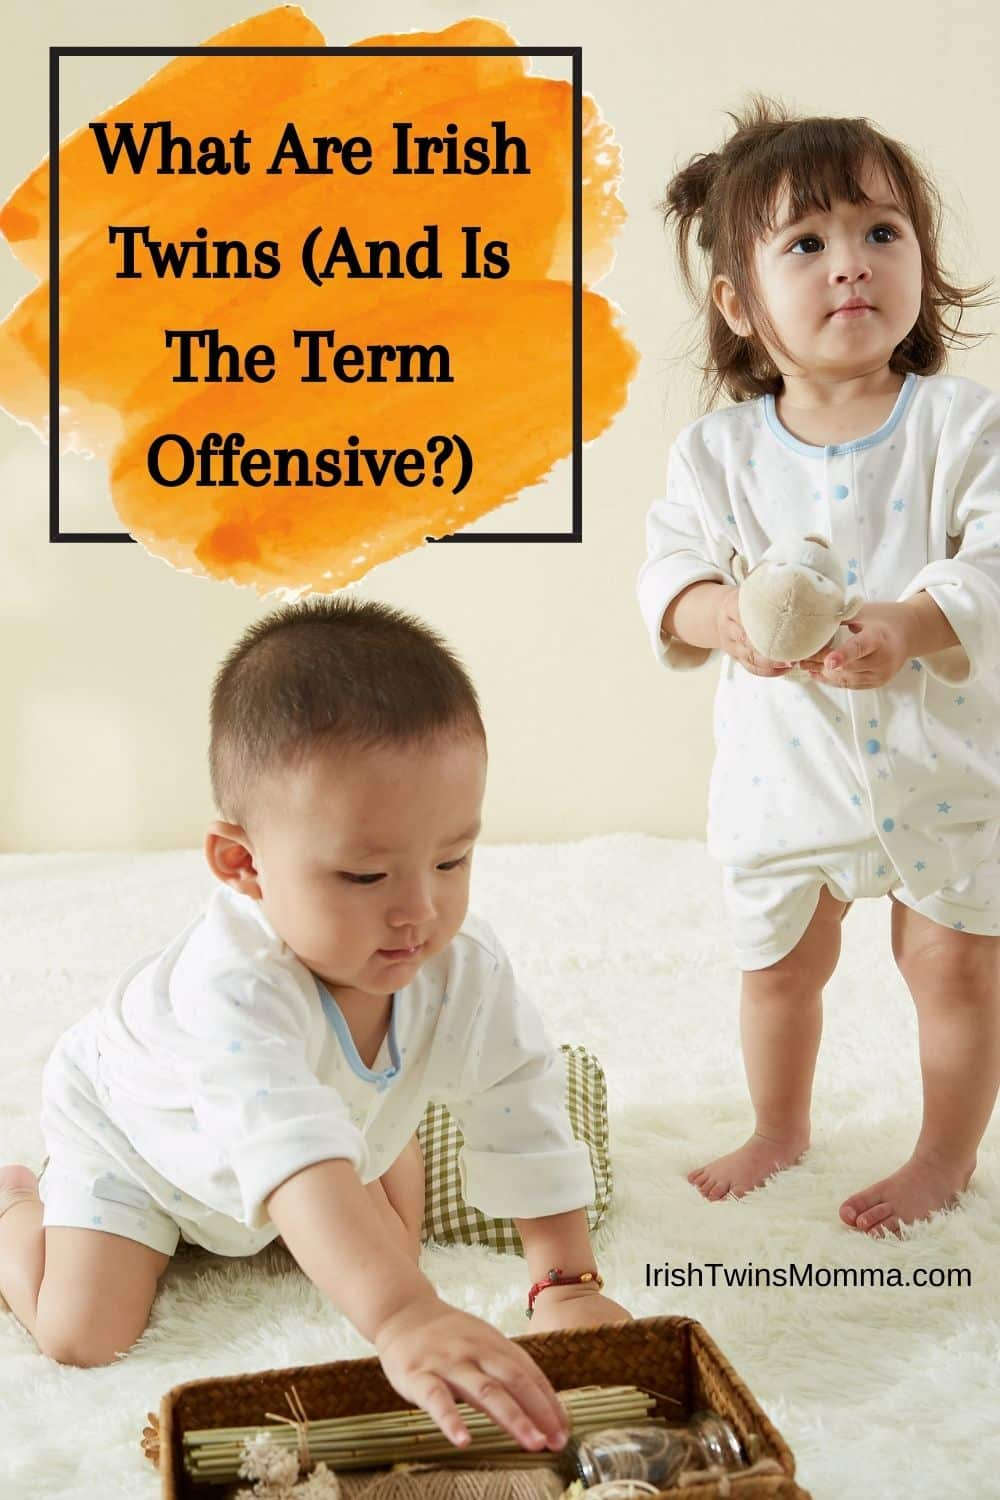 What Are Irish Twins (And Is The Term Offensive)